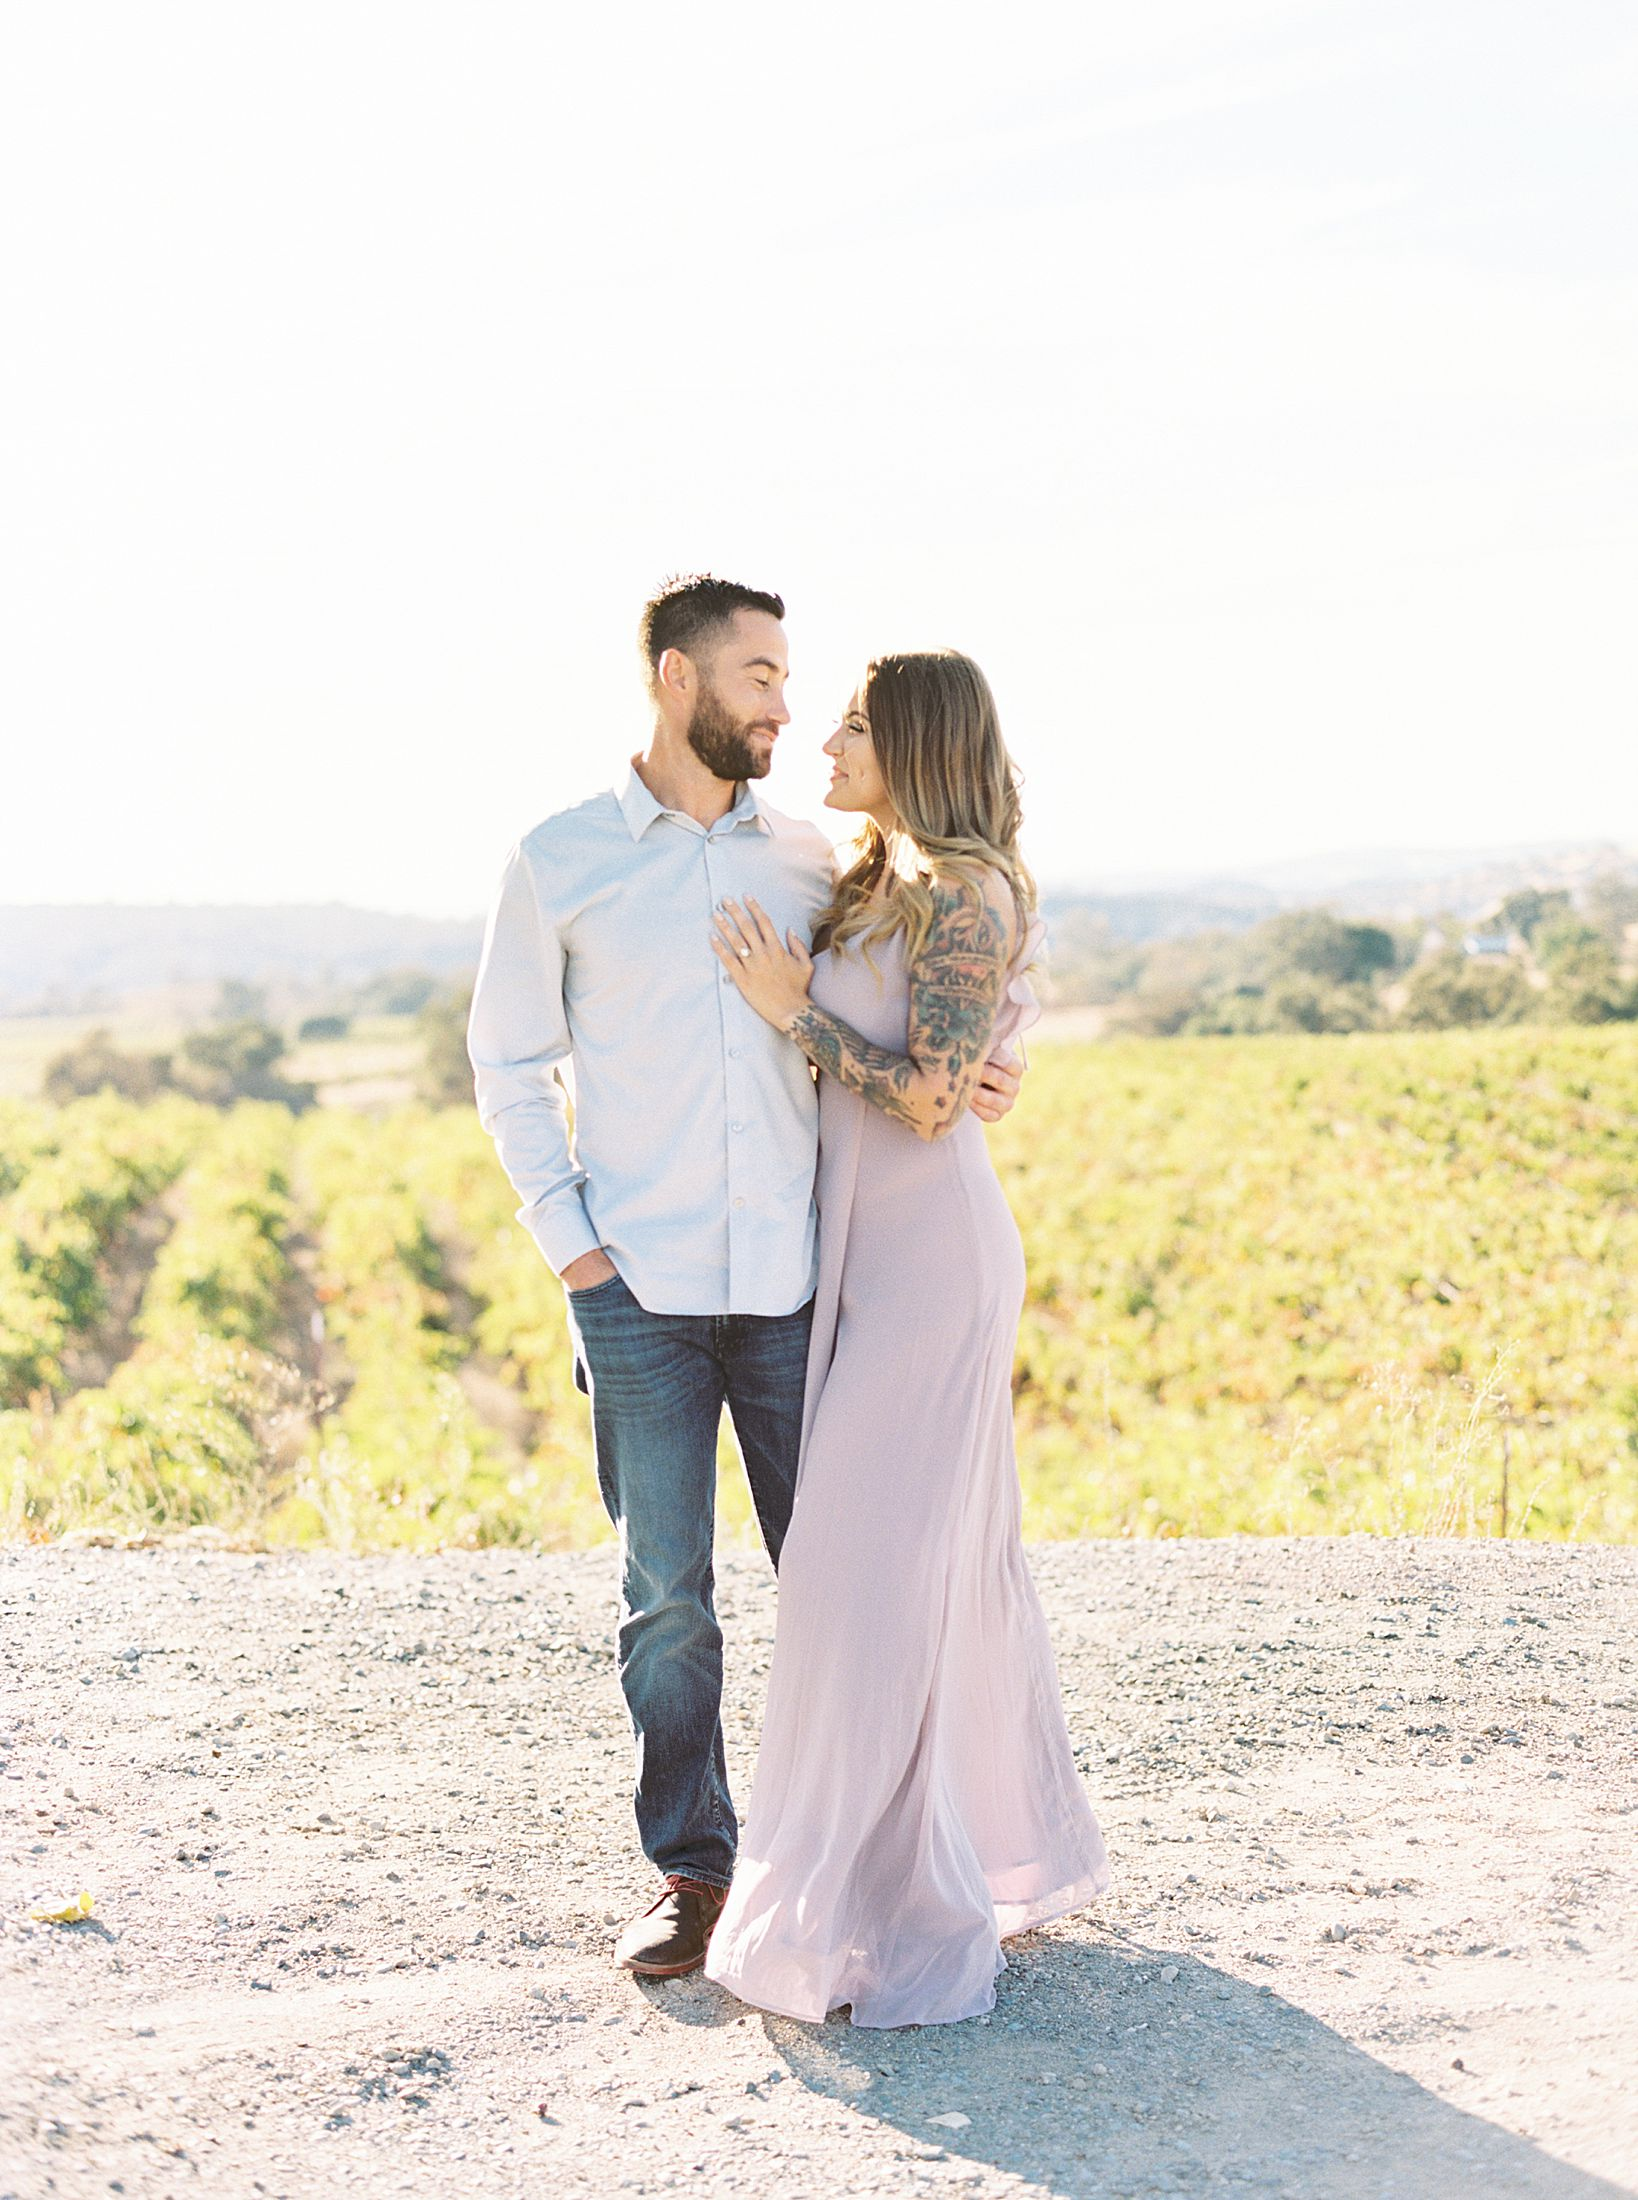 Helwig Winery Engagement Session - Steffanie and Rich - Jenn Robirds Events - Ashley Baumgartner - Sacramento Wedding Photographer - Private Estate Wedding Photographer - Helwig WInery Wedding_0076.jpg